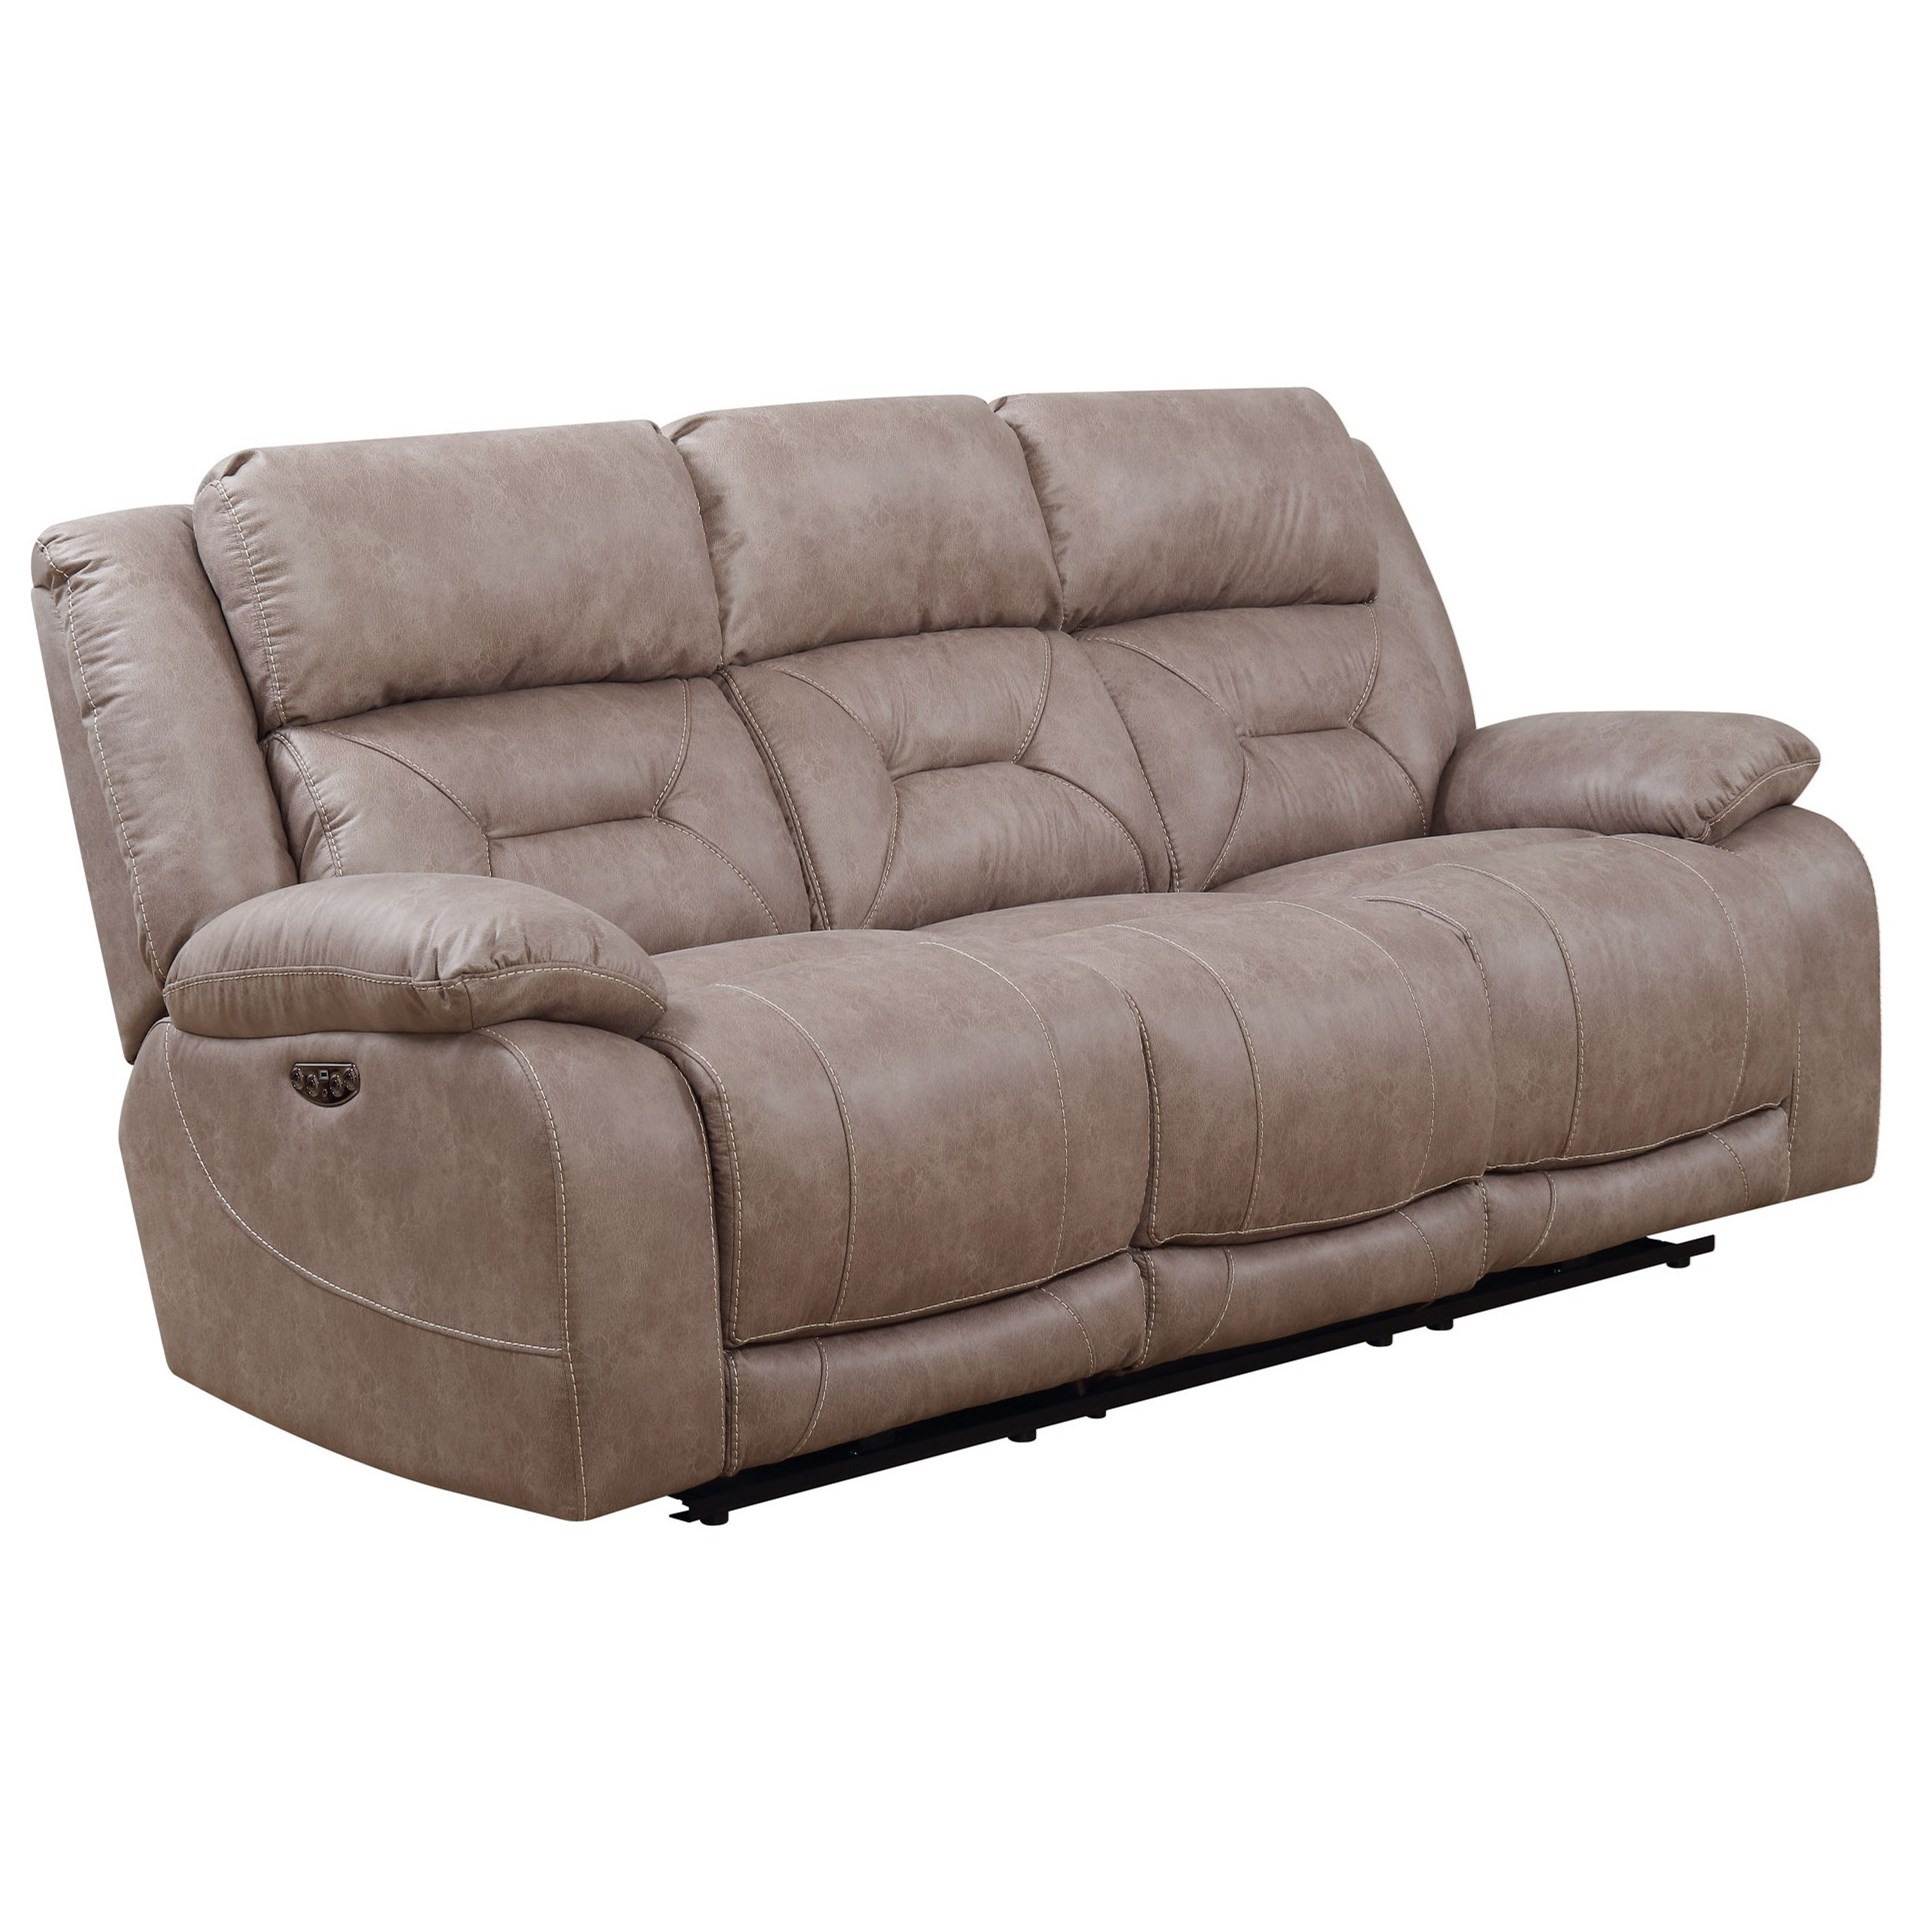 sofa world recliner chairs best filling for back cushions vendor 3985 aria aa950ss reclining becker furniture